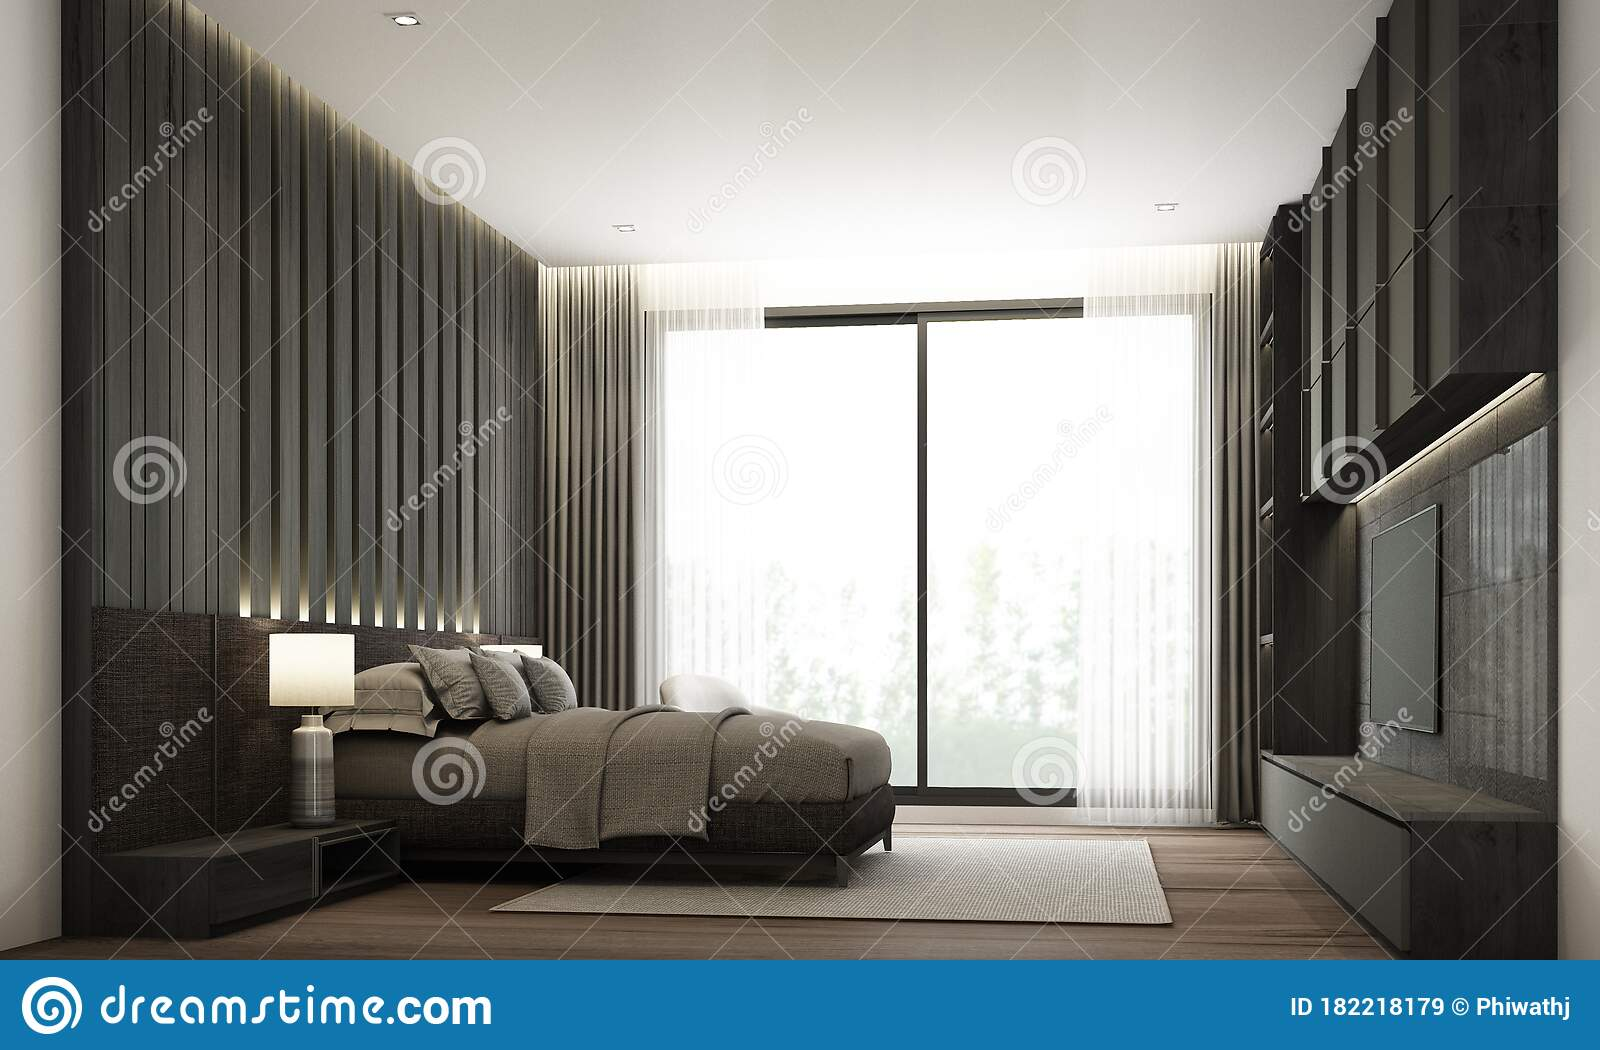 Bedroom Modern Minimal Style With Built In Headboard And Tv Cabinet Stock Illustration Illustration Of Decoration Floor 182218179,What Is Negative Energy Balance